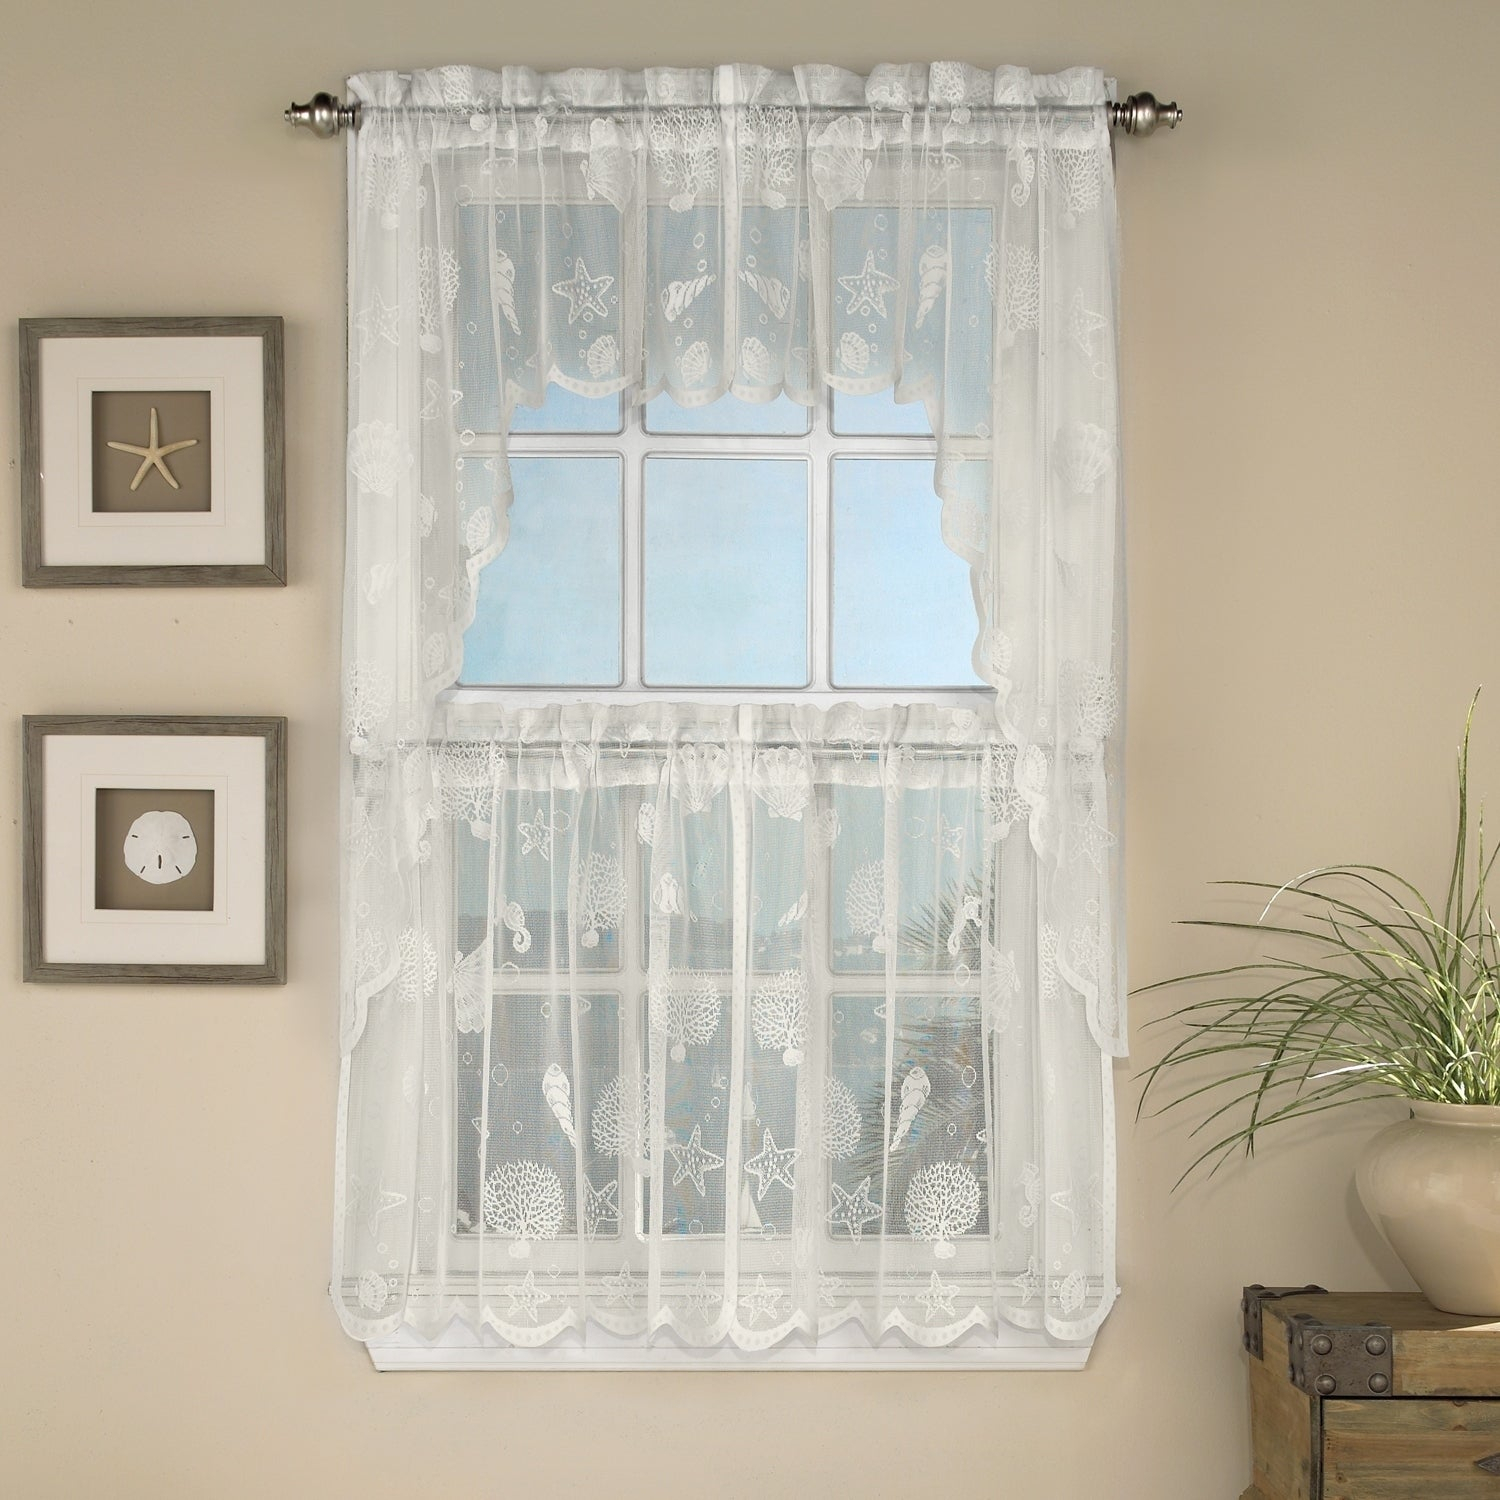 Marine Life Motif Knitted Lace Window Curtain Pieces Throughout White Tone On Tone Raised Microcheck Semisheer Window Curtain Pieces (View 16 of 20)